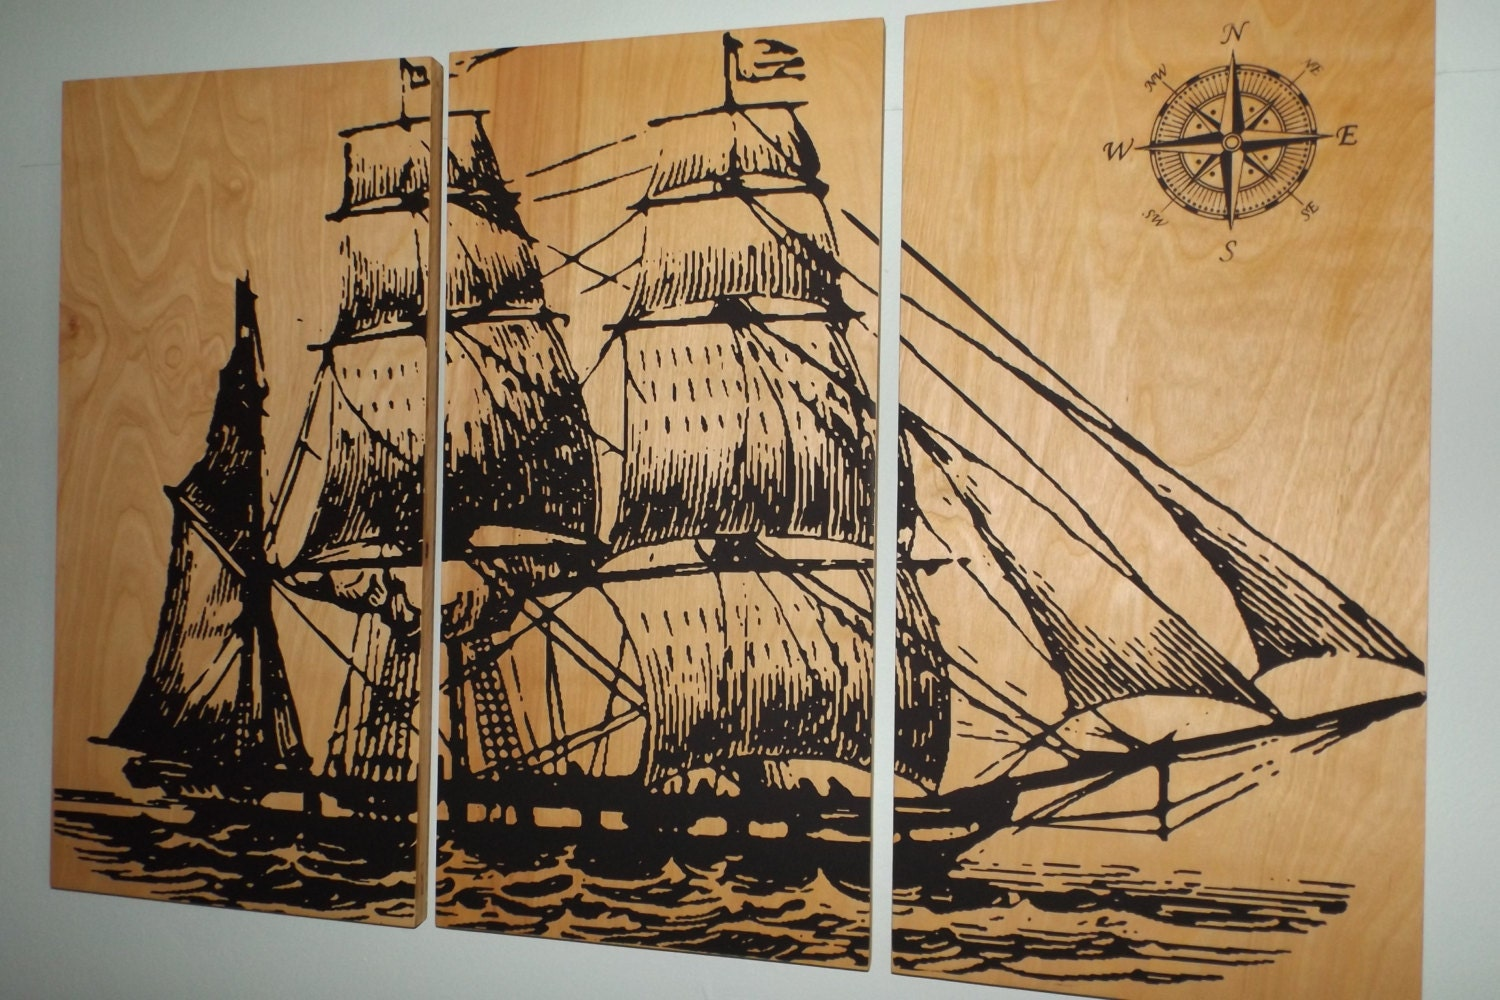 Wall Hangings For Bedrooms Vintage Pirate Ship Sailboat Screen Print Wood Painting